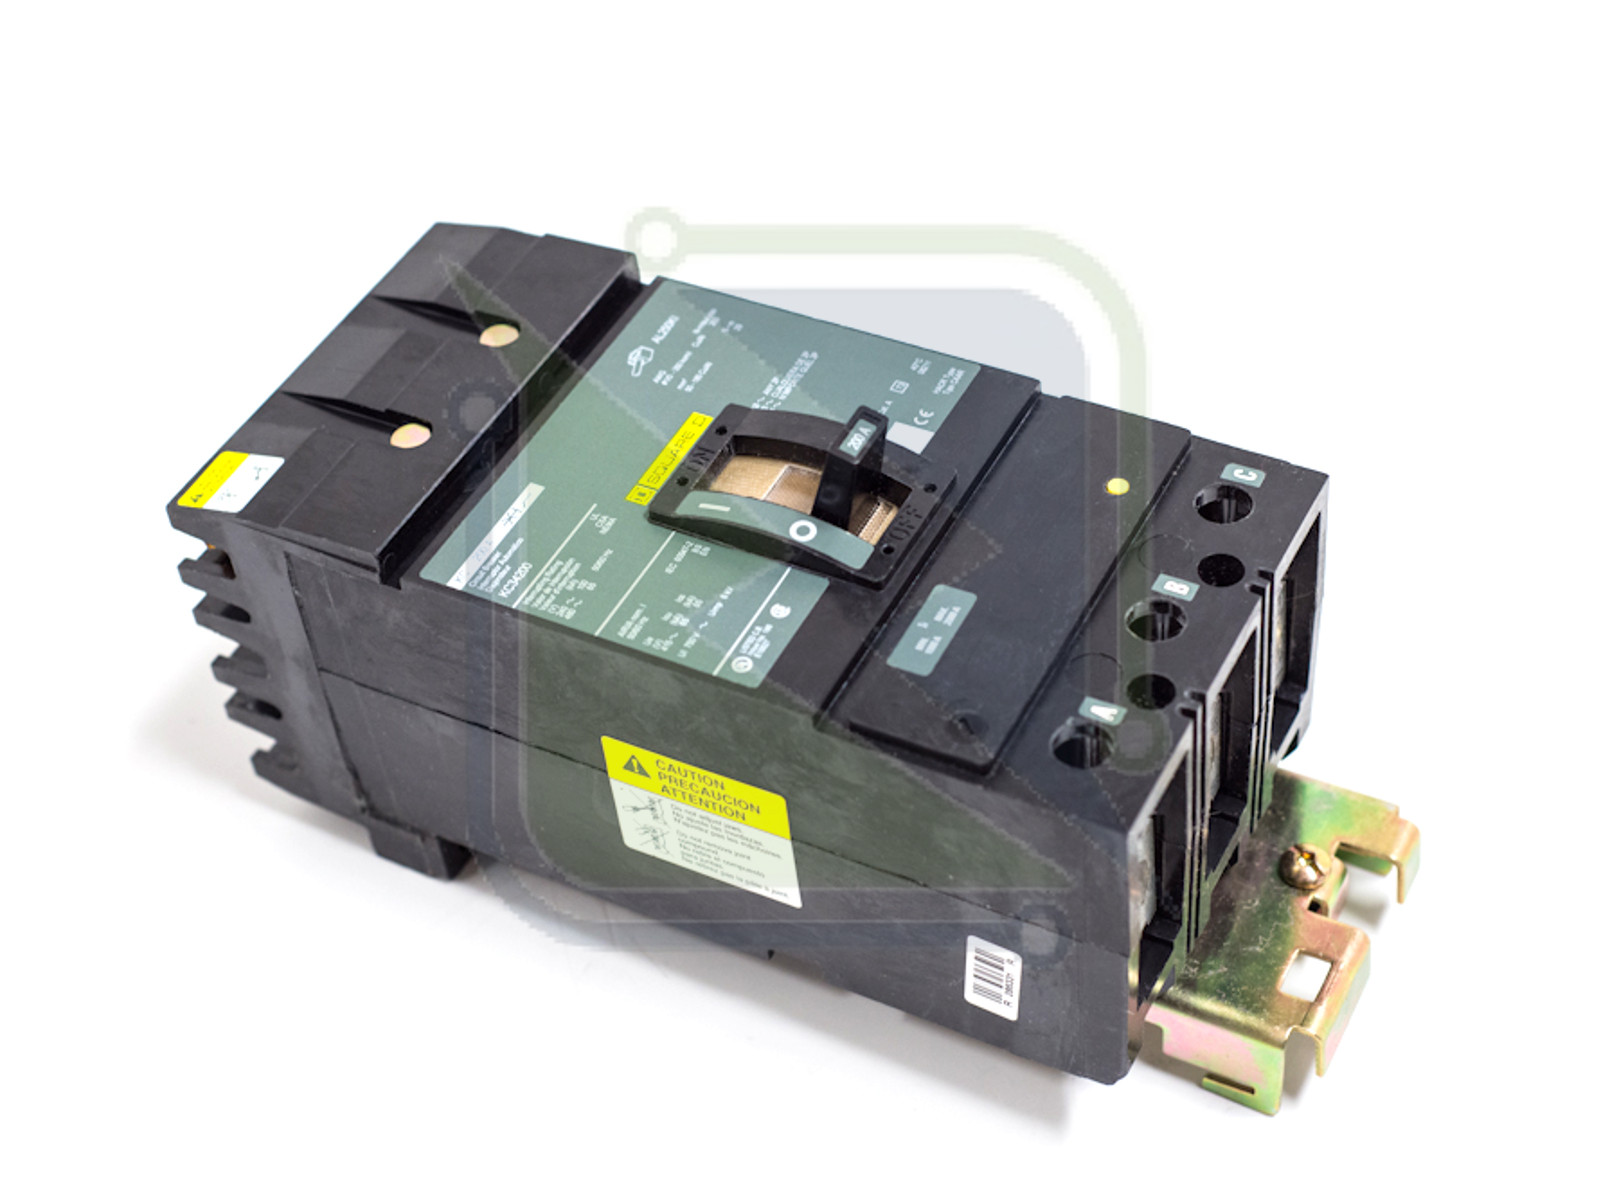 Ka36200 For 42703 Square D Schneider Electric Breaker Box With A Federal Pacific Circuit Panel Stablok Relectric Recommends Re Certified Plus